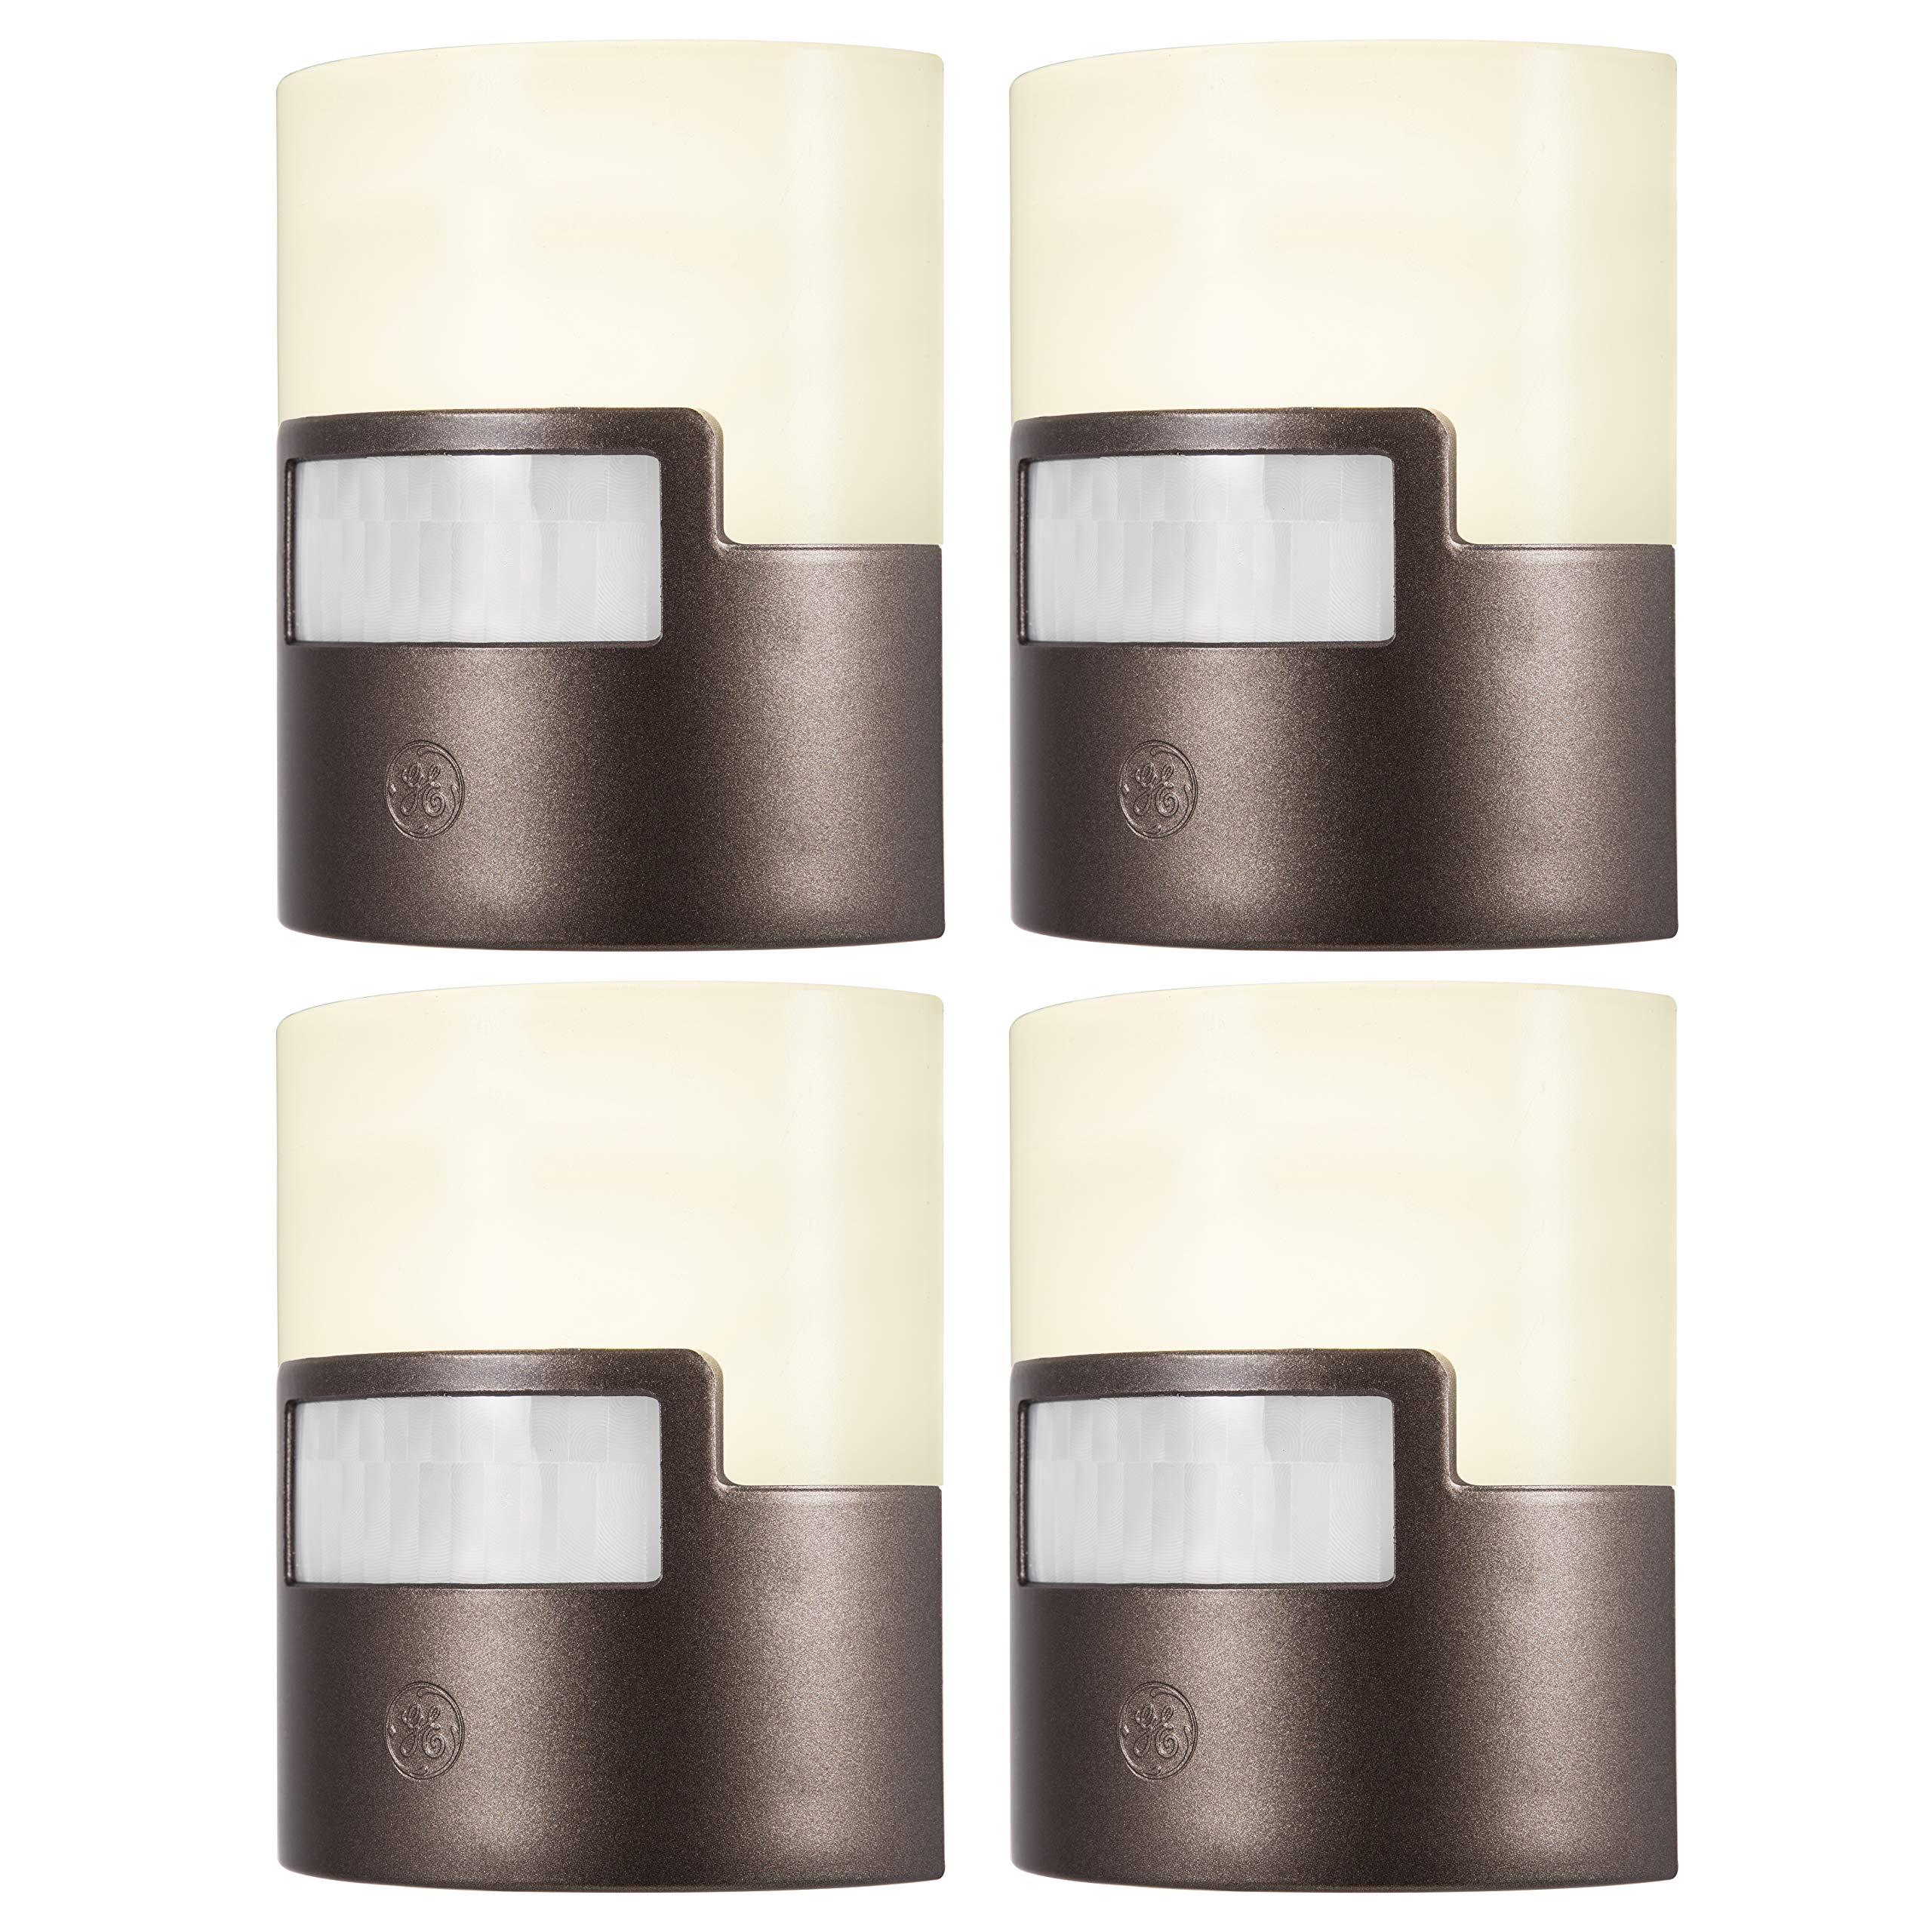 GE Ultra Brite Motion-Activated LED Light, 4-Pack, 40 Lumens Each, Soft White, Night Light, Energy Efficient, Ideal for Hallway, Entry, Stairs, Bathroom, Kitchen, Garage, for Kids, Bronze, 43667